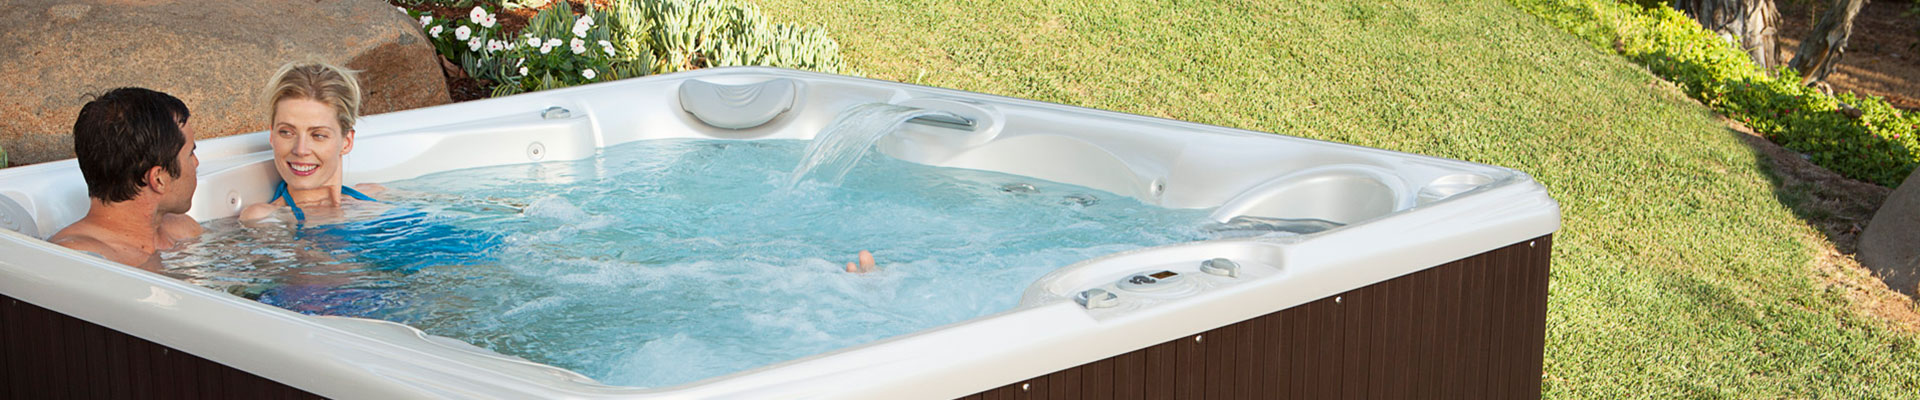 Spring Cleaning? Don't Forget the Hot Tub!